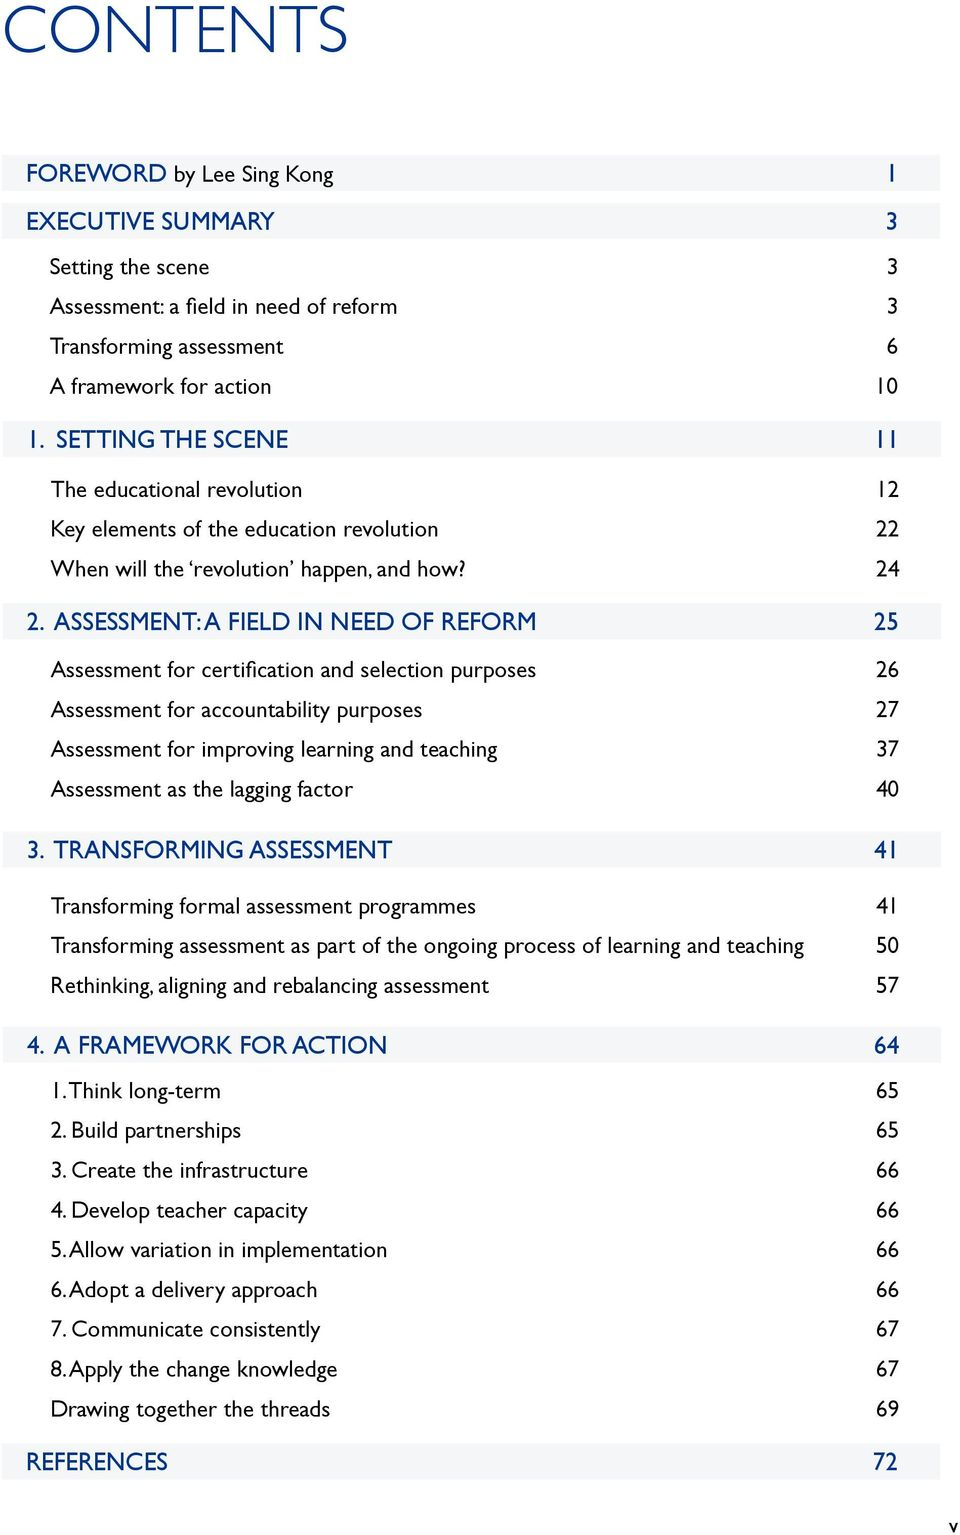 ASSESSMENT: A FIELD IN NEED OF REFORM 25 Assessment for certification and selection purposes 26 Assessment for accountability purposes 27 Assessment for improving learning and teaching 37 Assessment